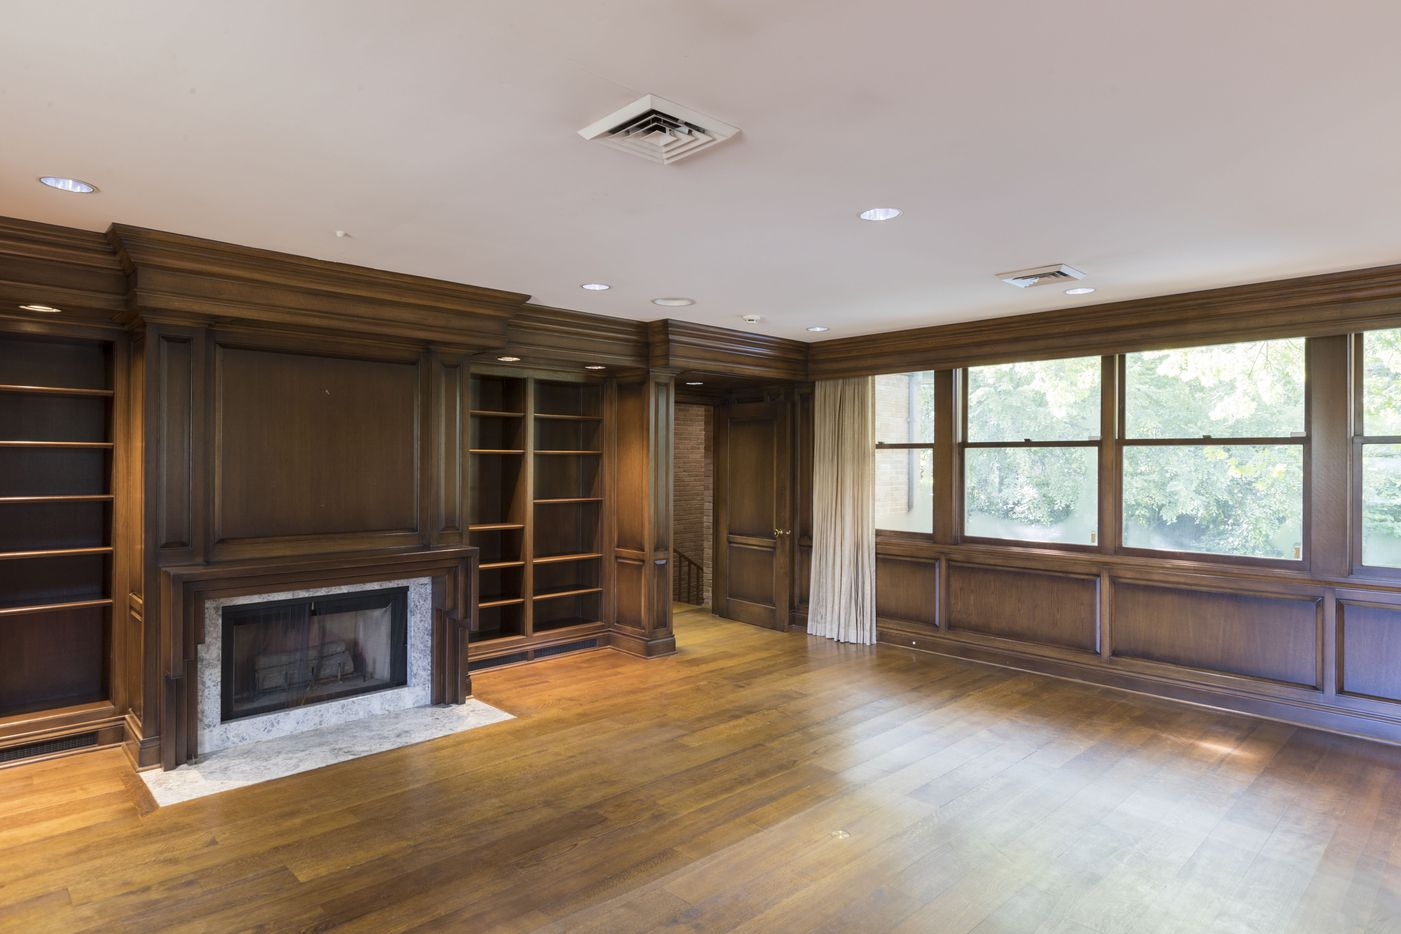 Fireplace and built-in shelves in the den.